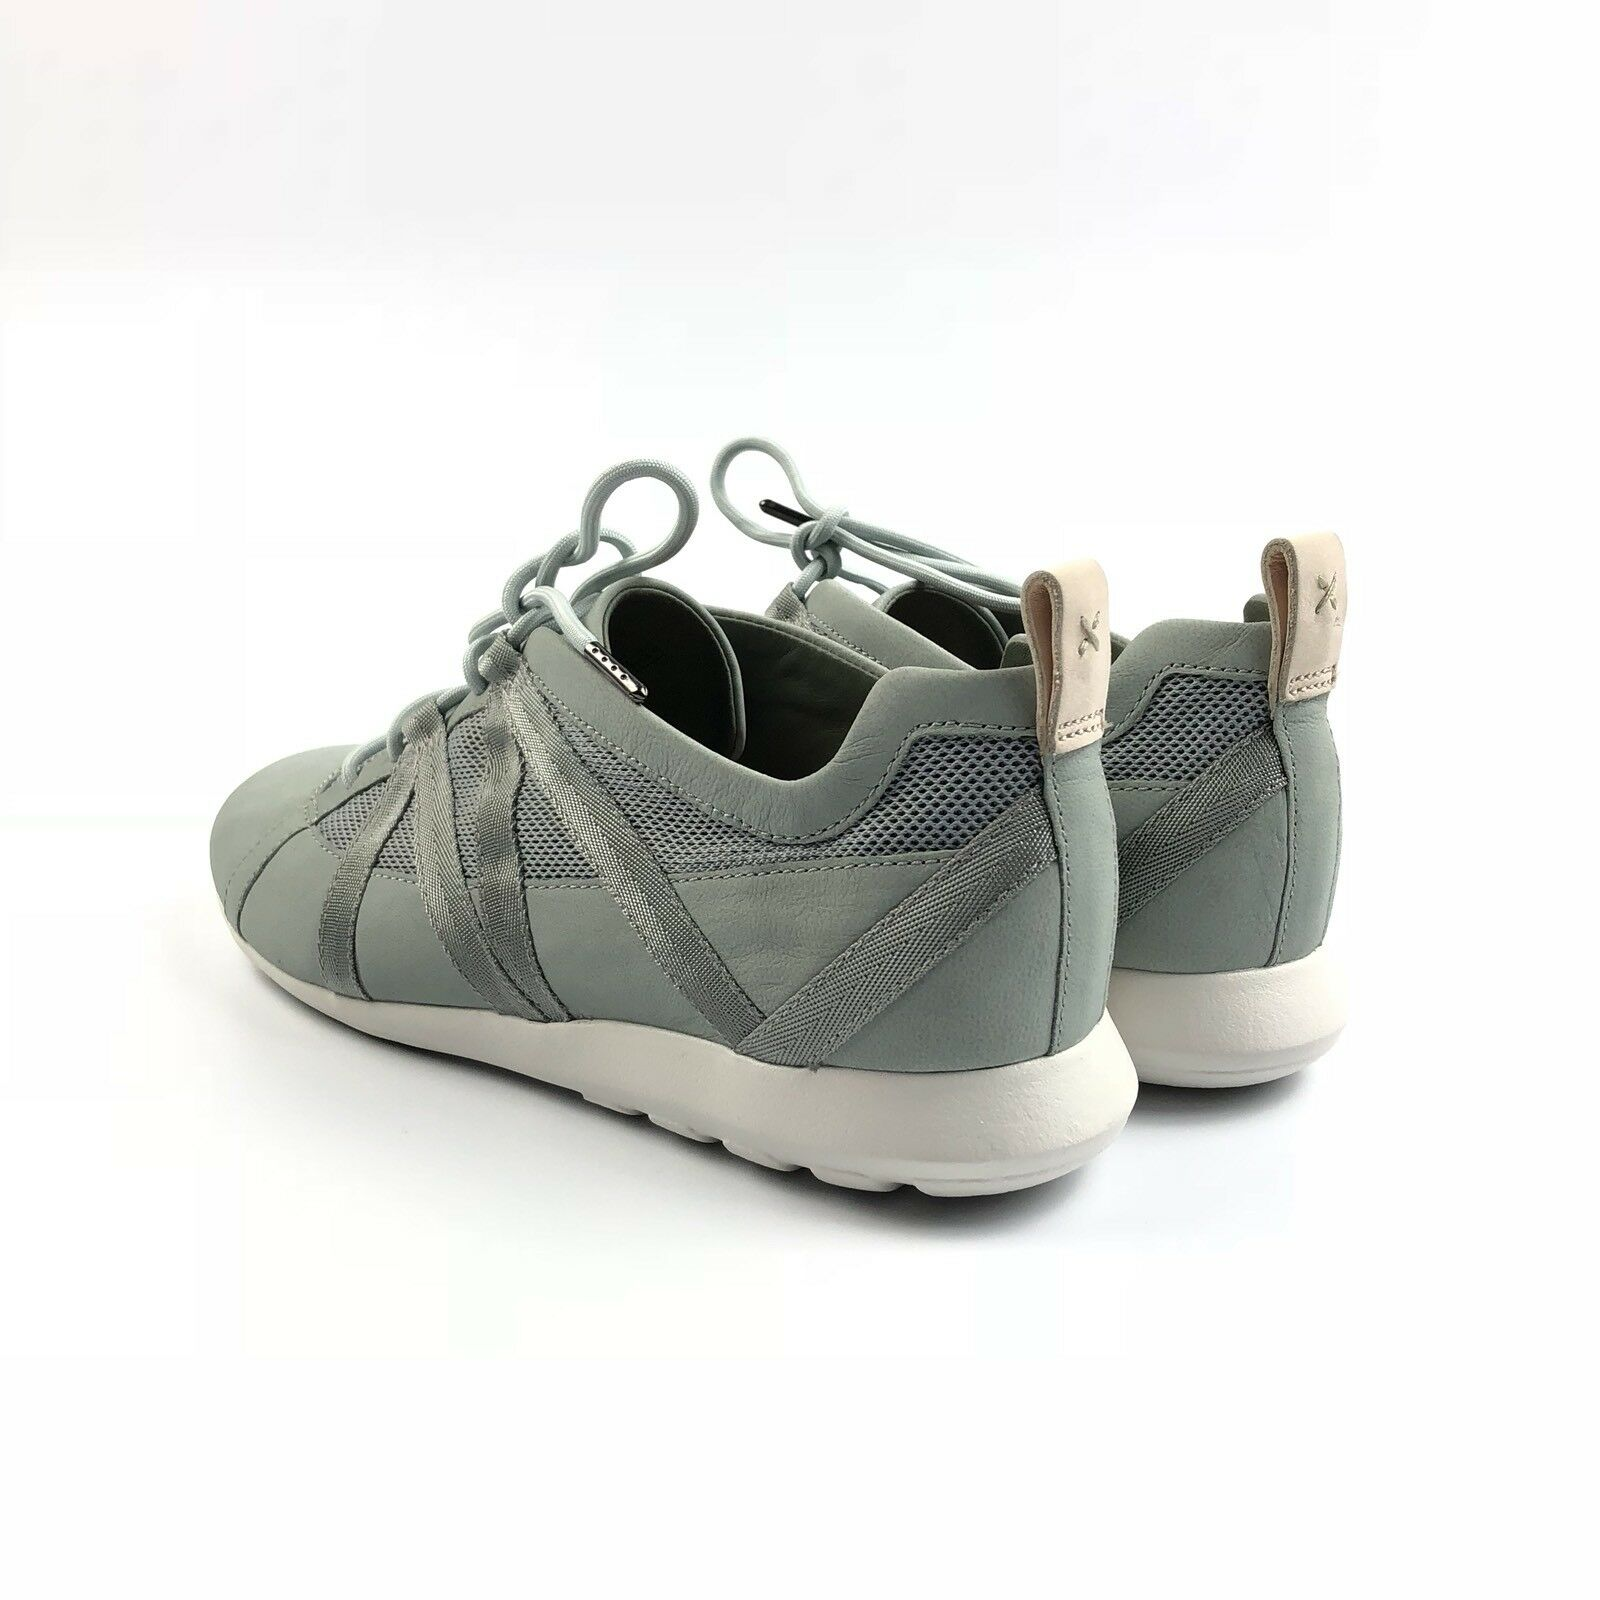 Clarks X Green Christopher Raeburn Donna Sabah Green X Trail Trainers Shoes Size 9 NEW f921c2